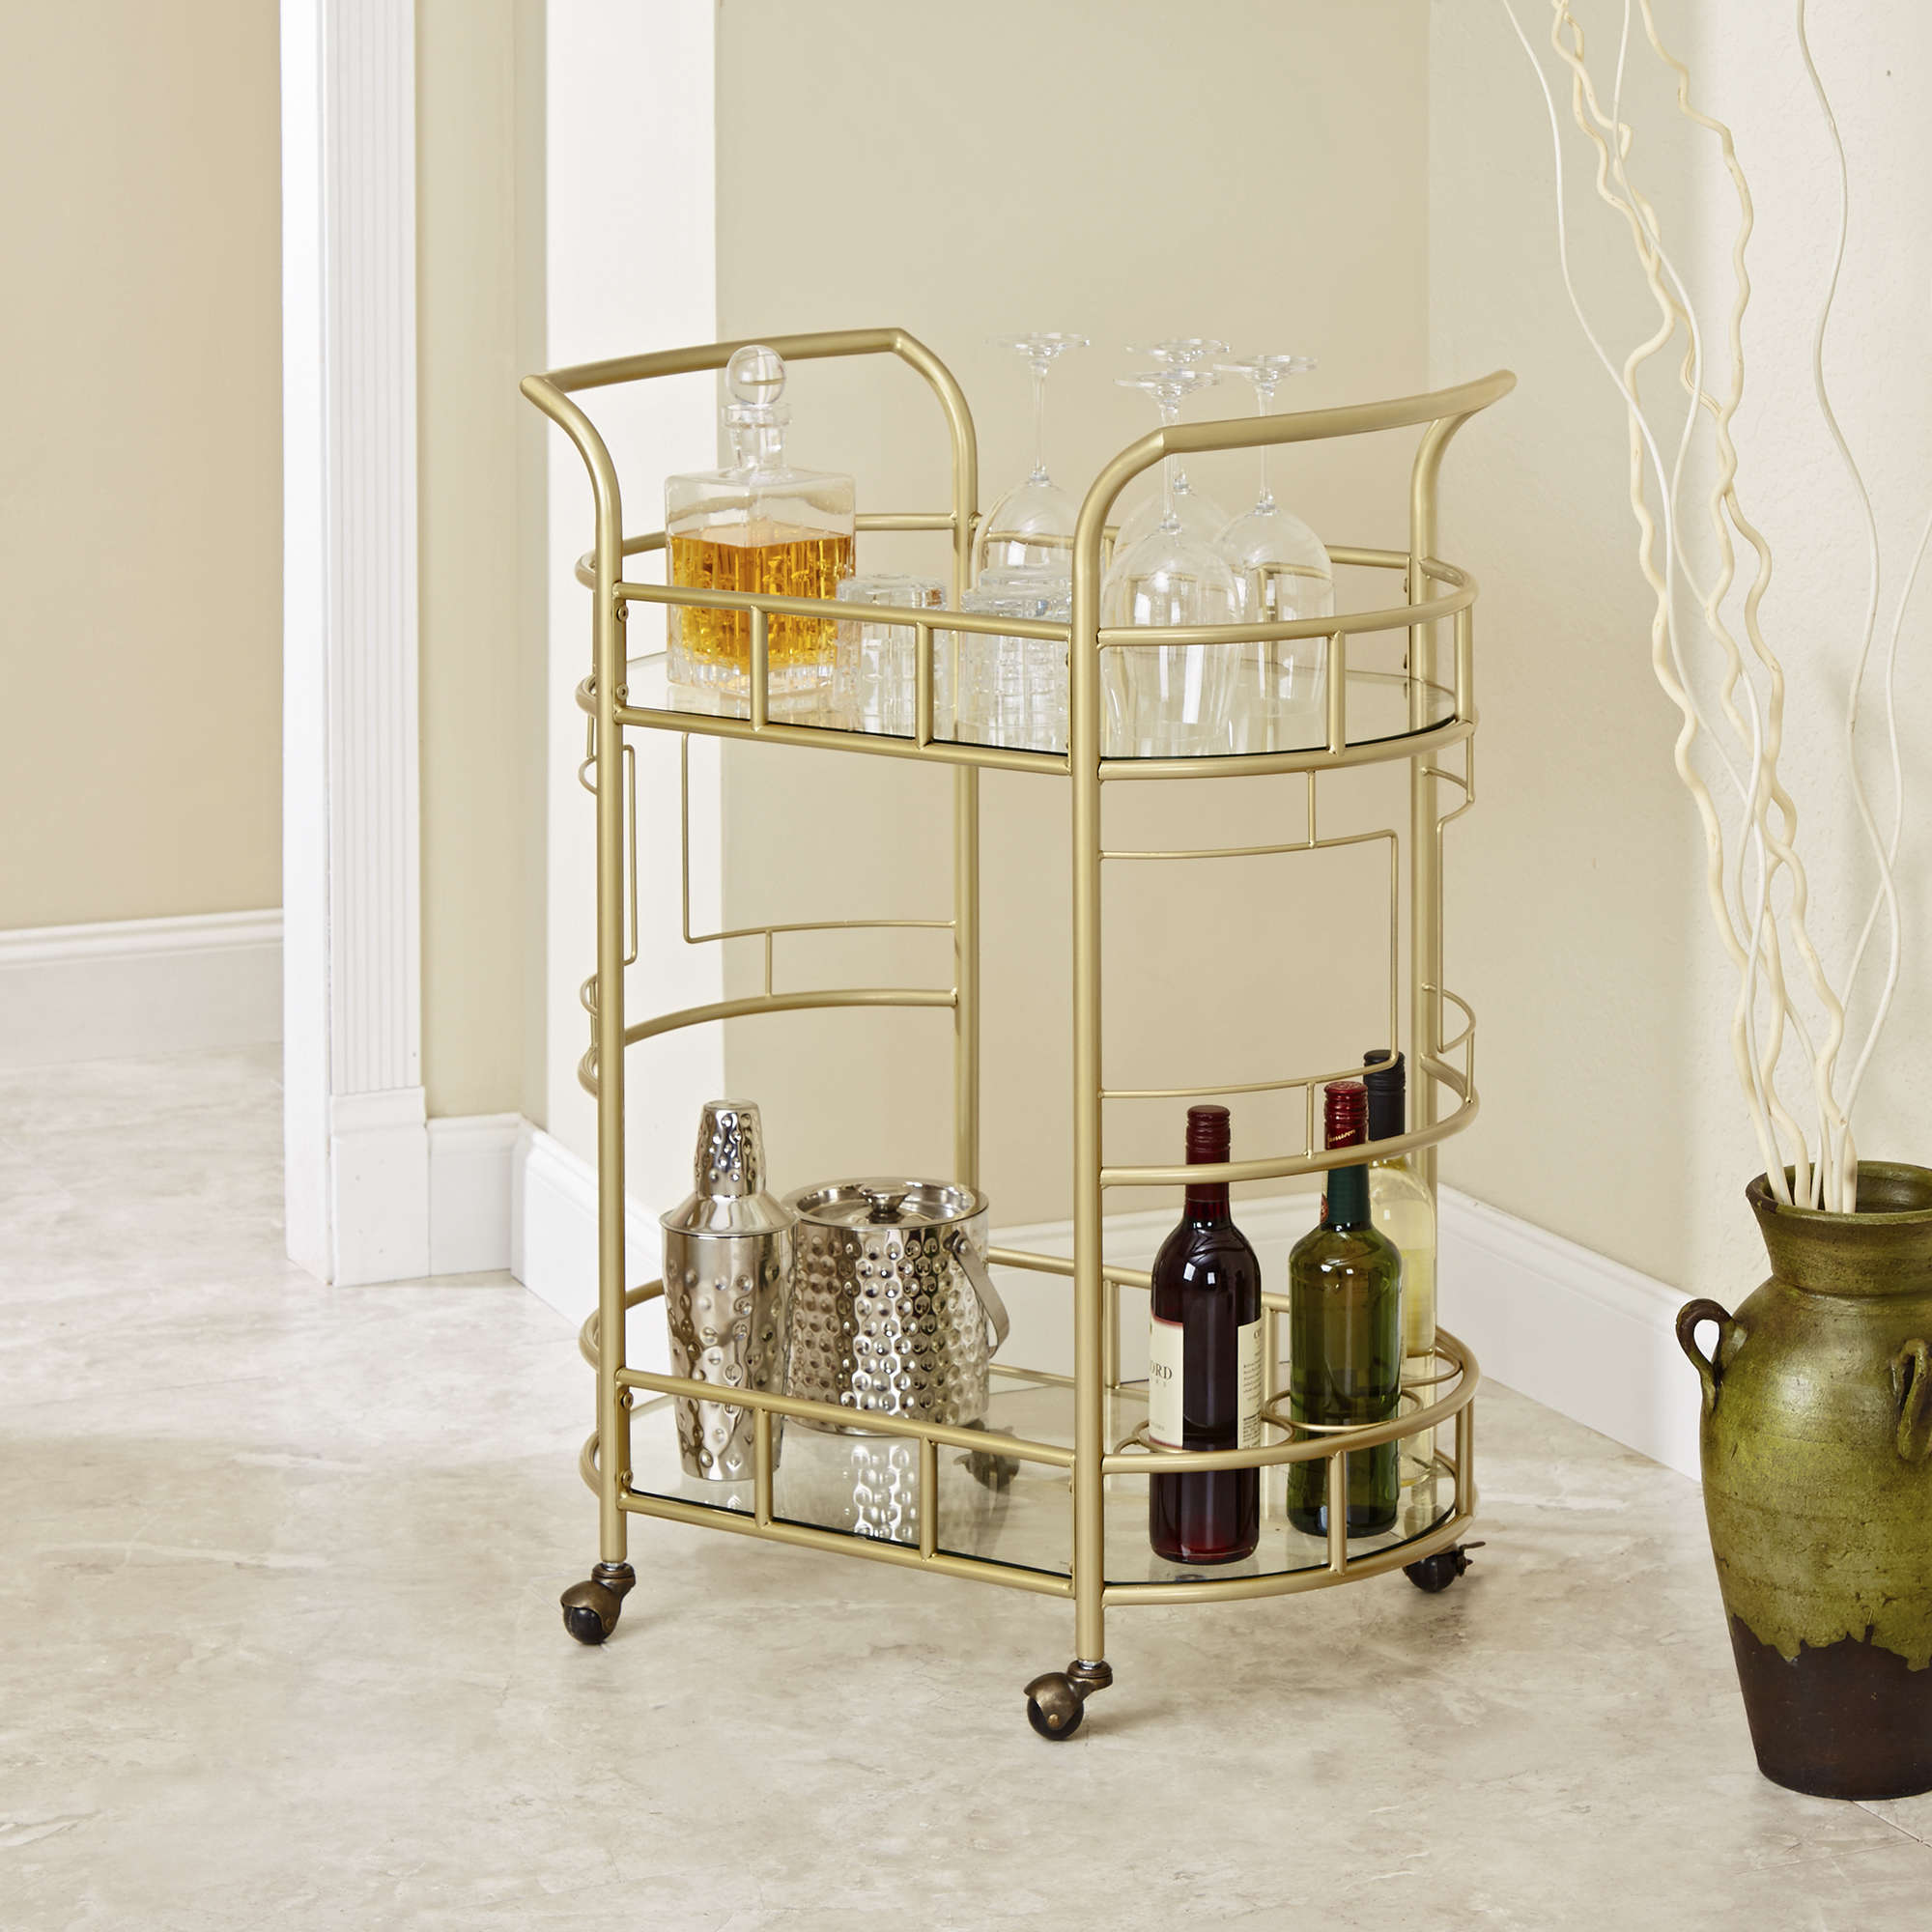 Sinclair 2-Tier Serving Cart in Gold